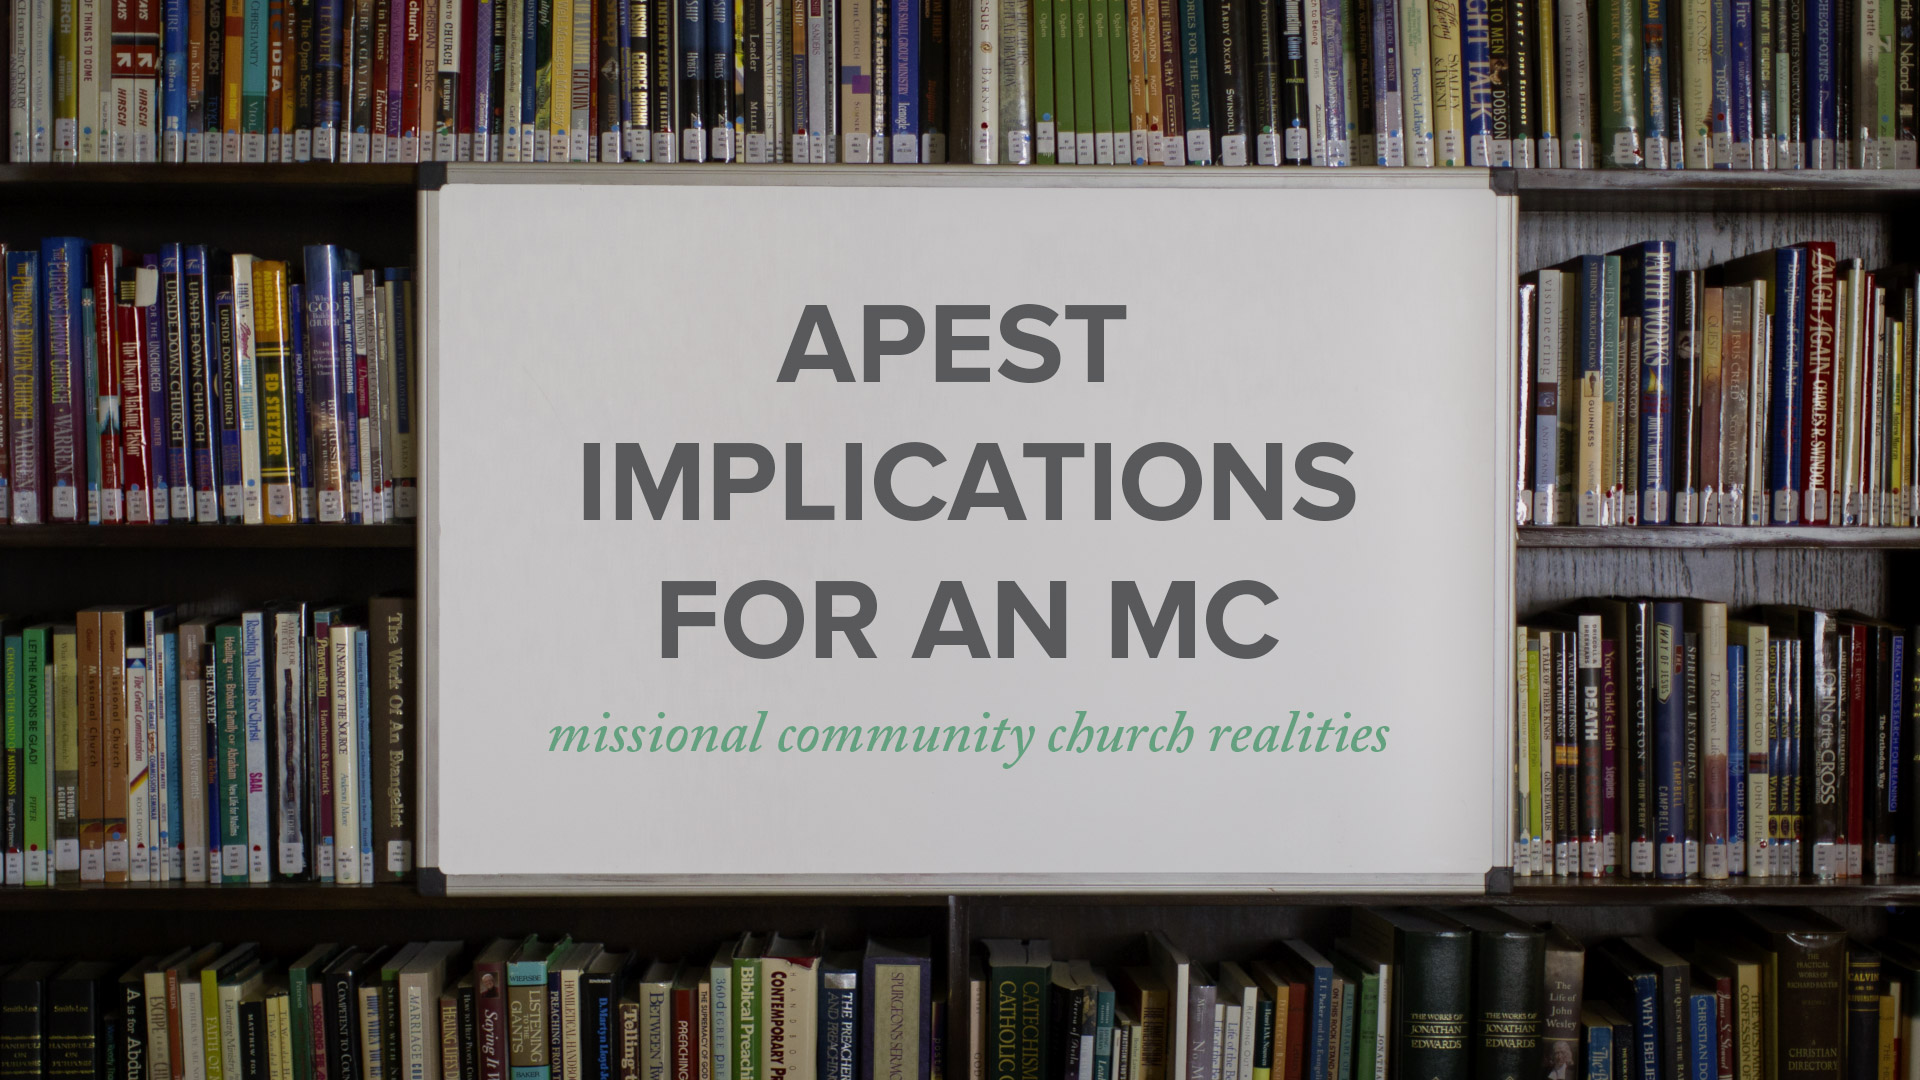 APEST Implications for a Missional Community